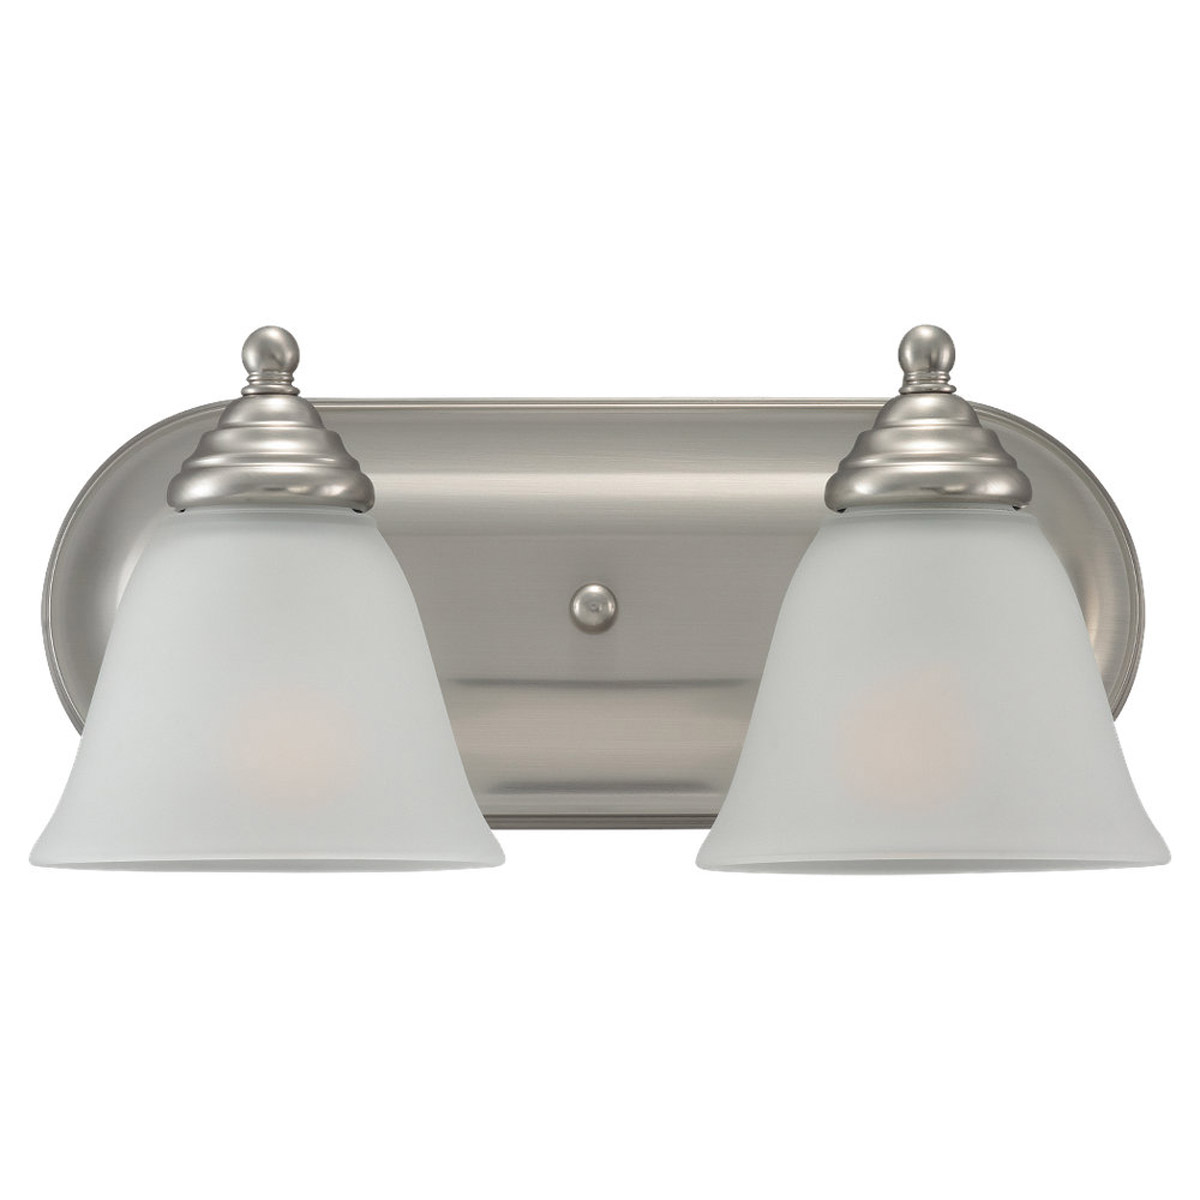 Sea Gull Lighting Albany 2 Light Bath Vanity in Brushed Nickel 44576-962 photo